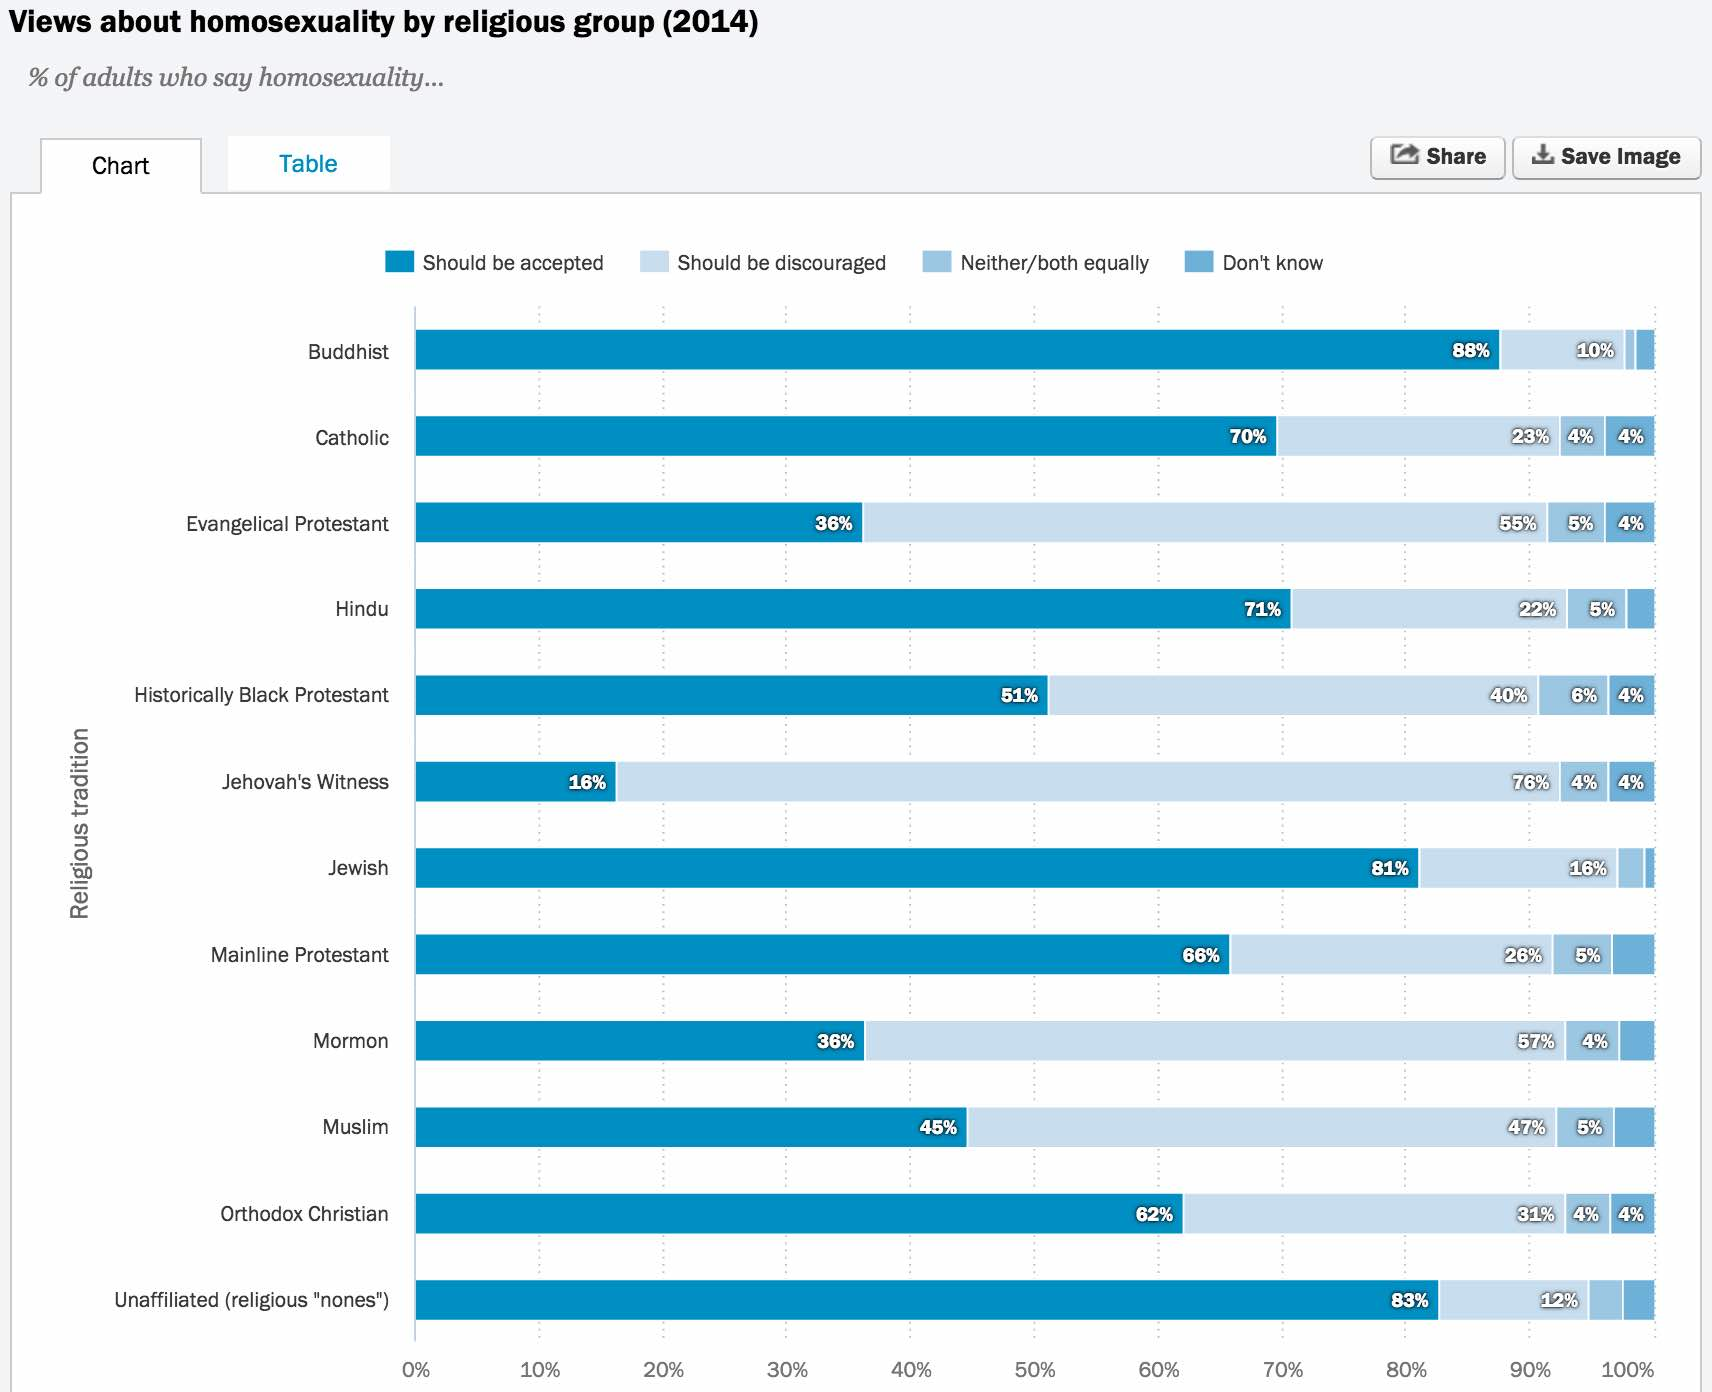 Scriptures referring to homosexuality statistics